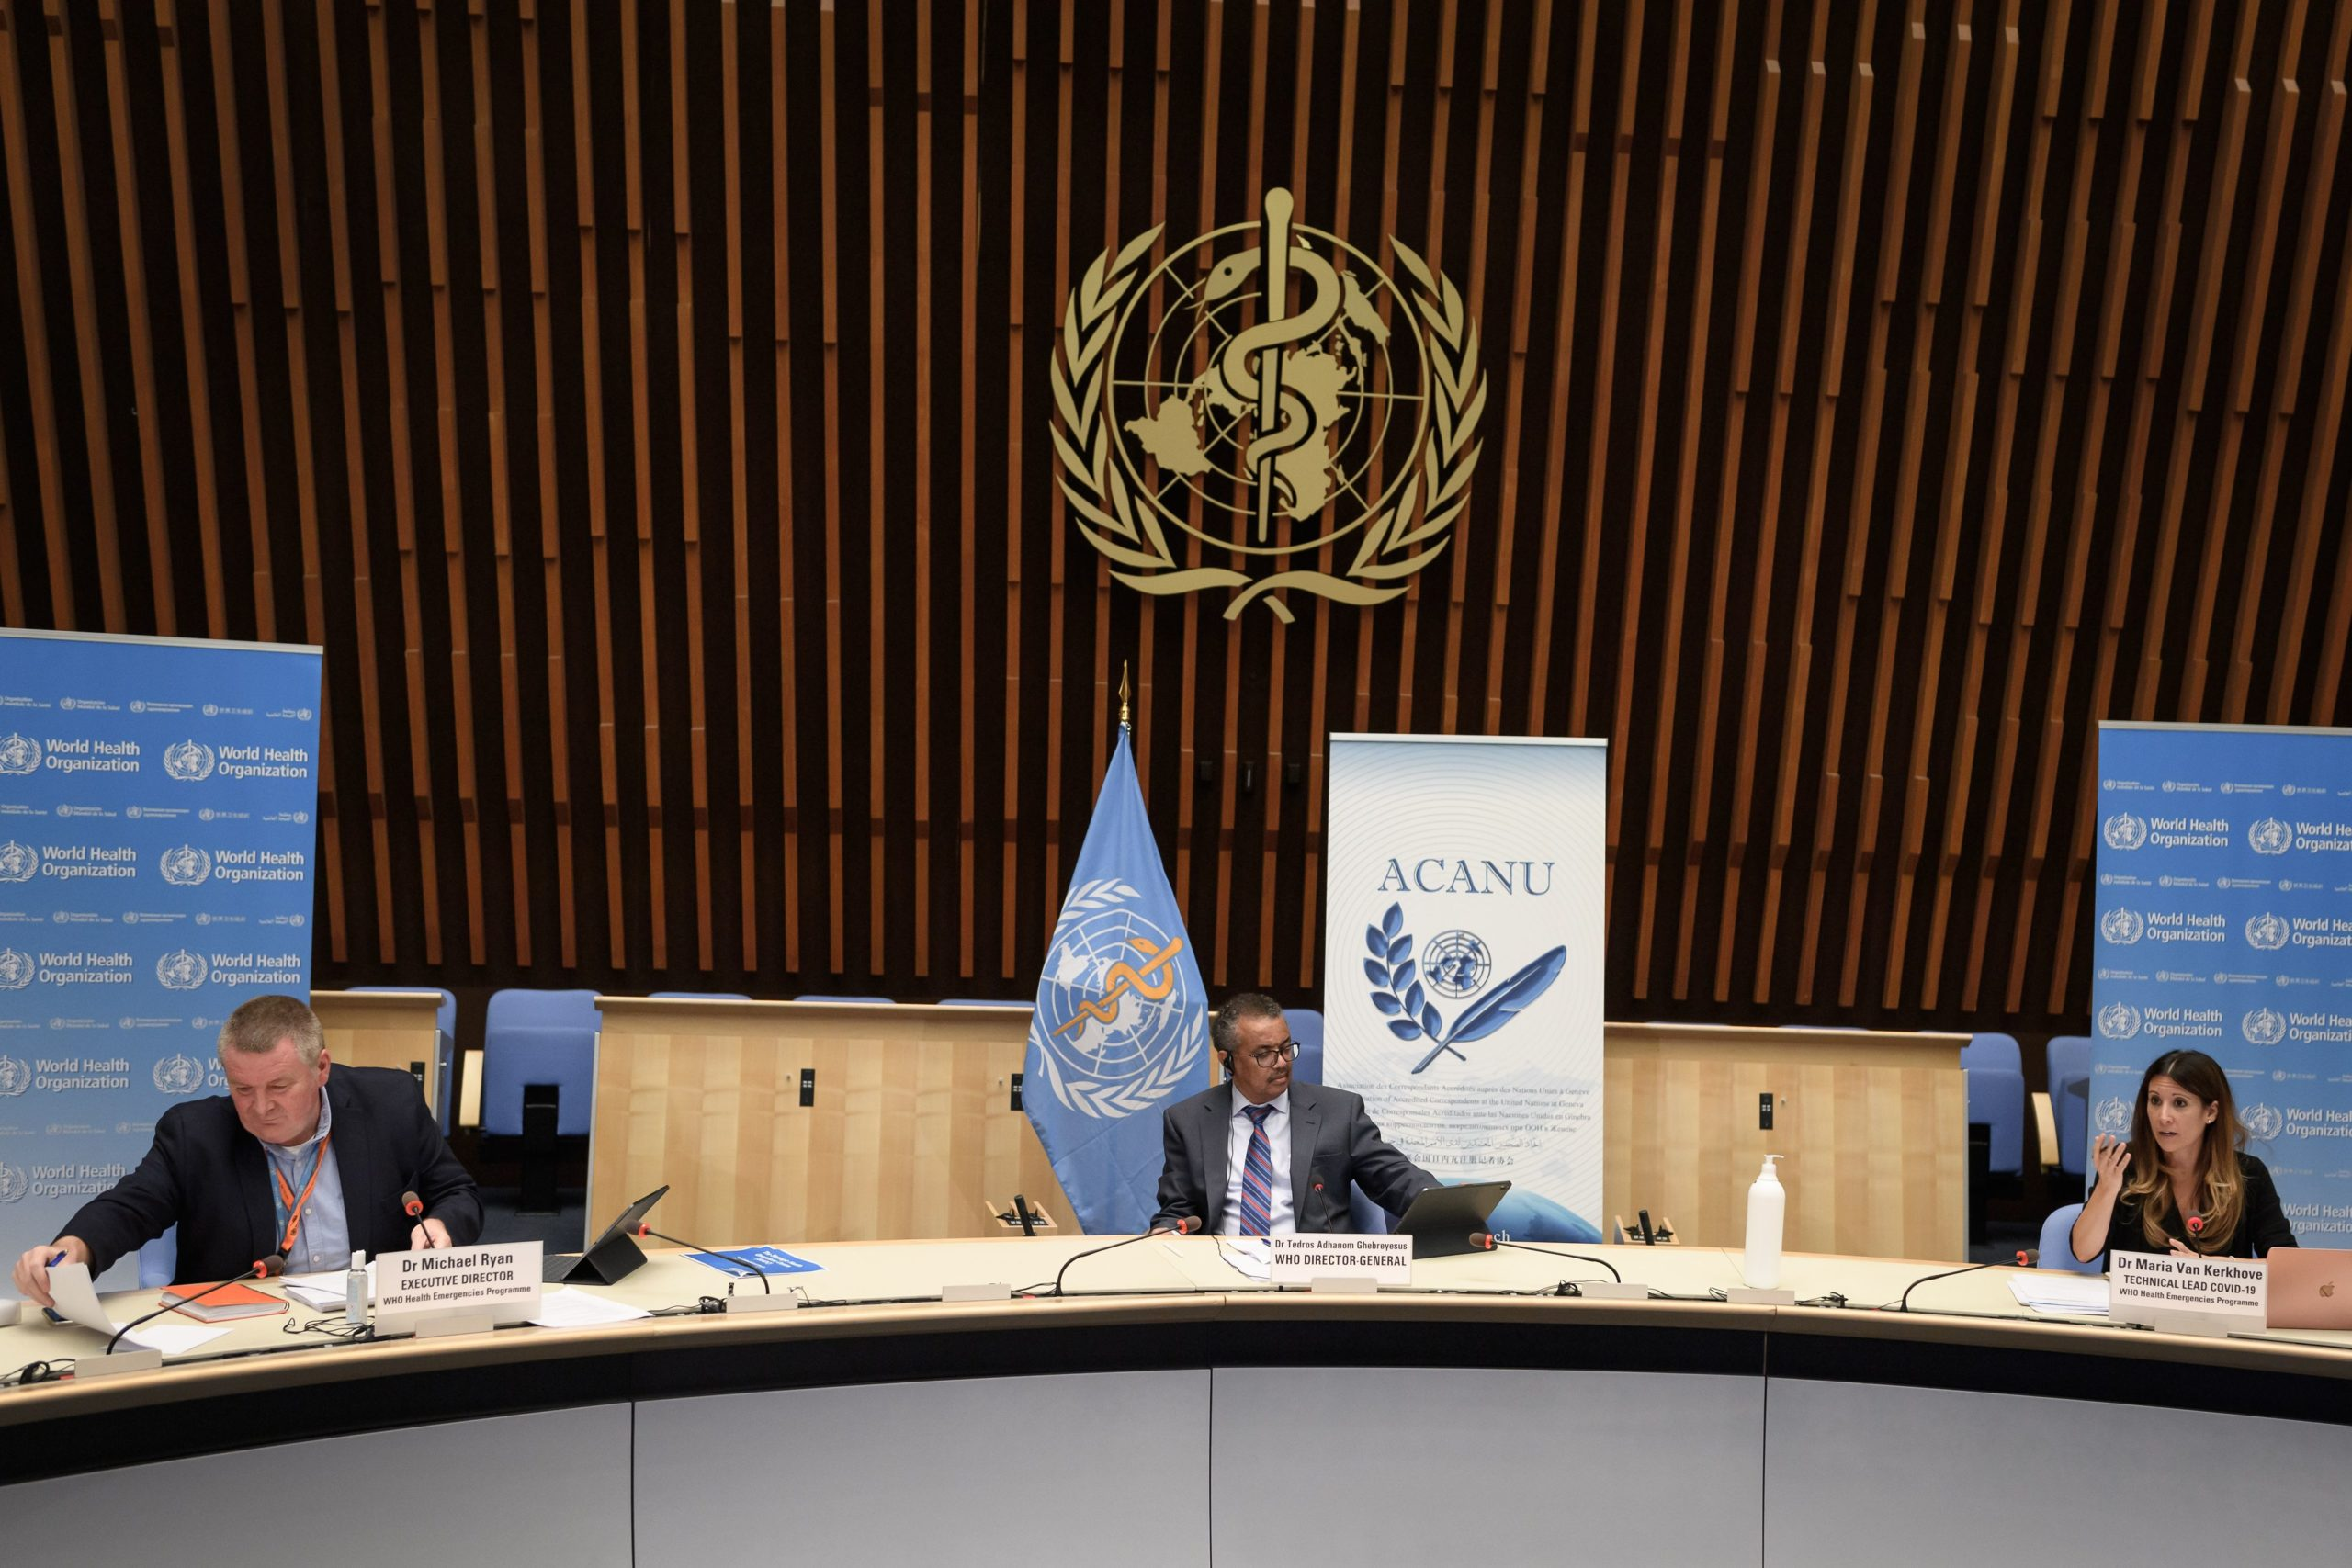 World Health Organization officials attend a press conference in July. (Fabrice Coffrini/Pool/AFP via Getty Images)